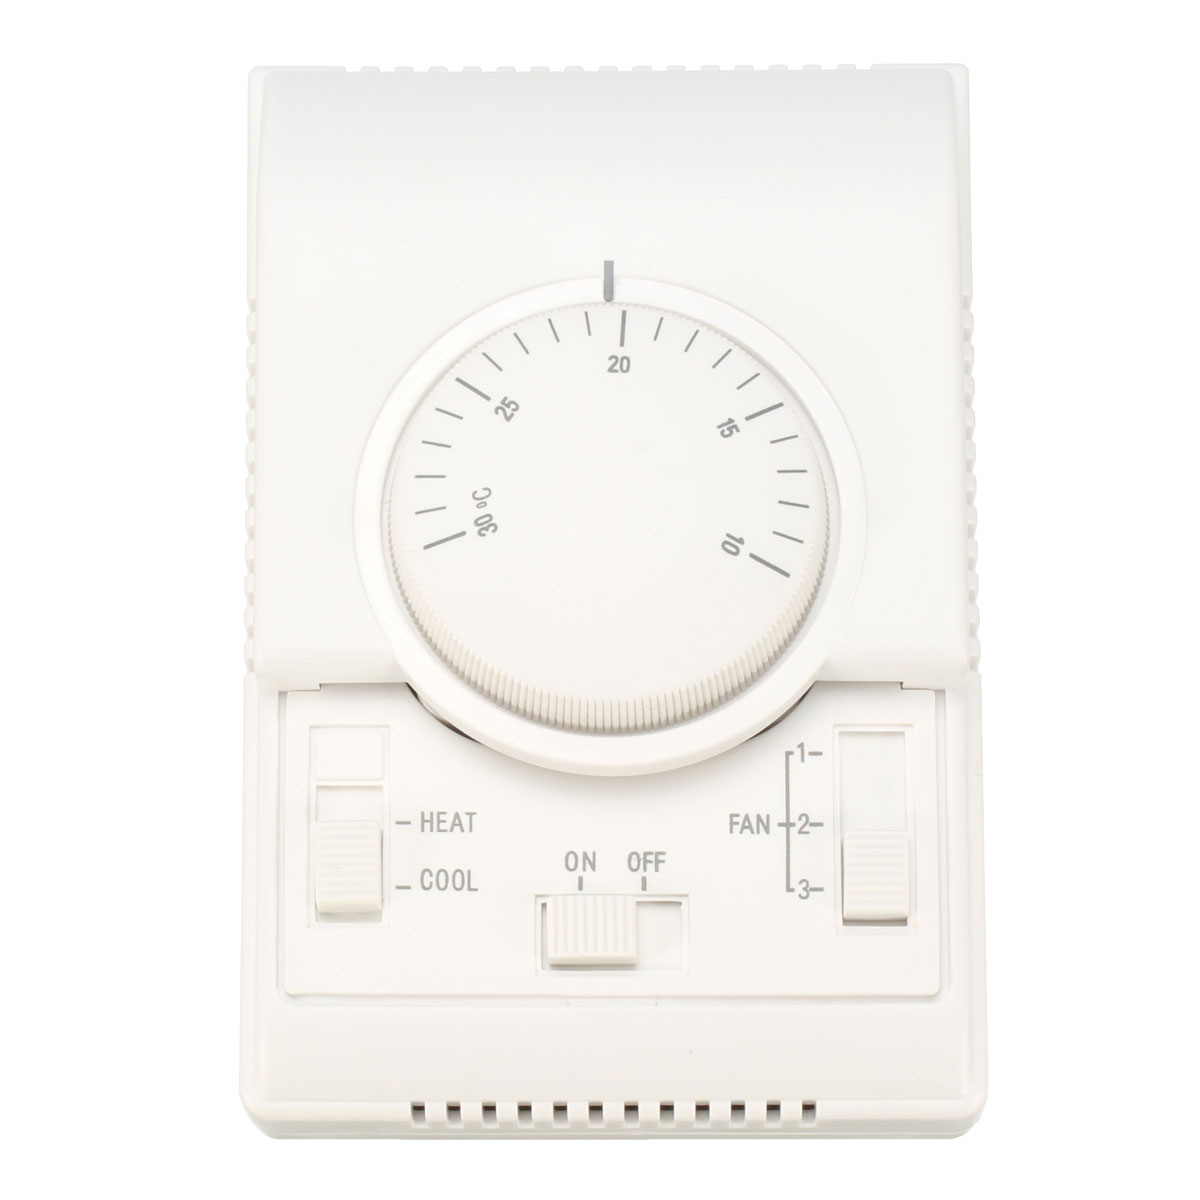 Heat Cool Temperature Control Mechanical Controller